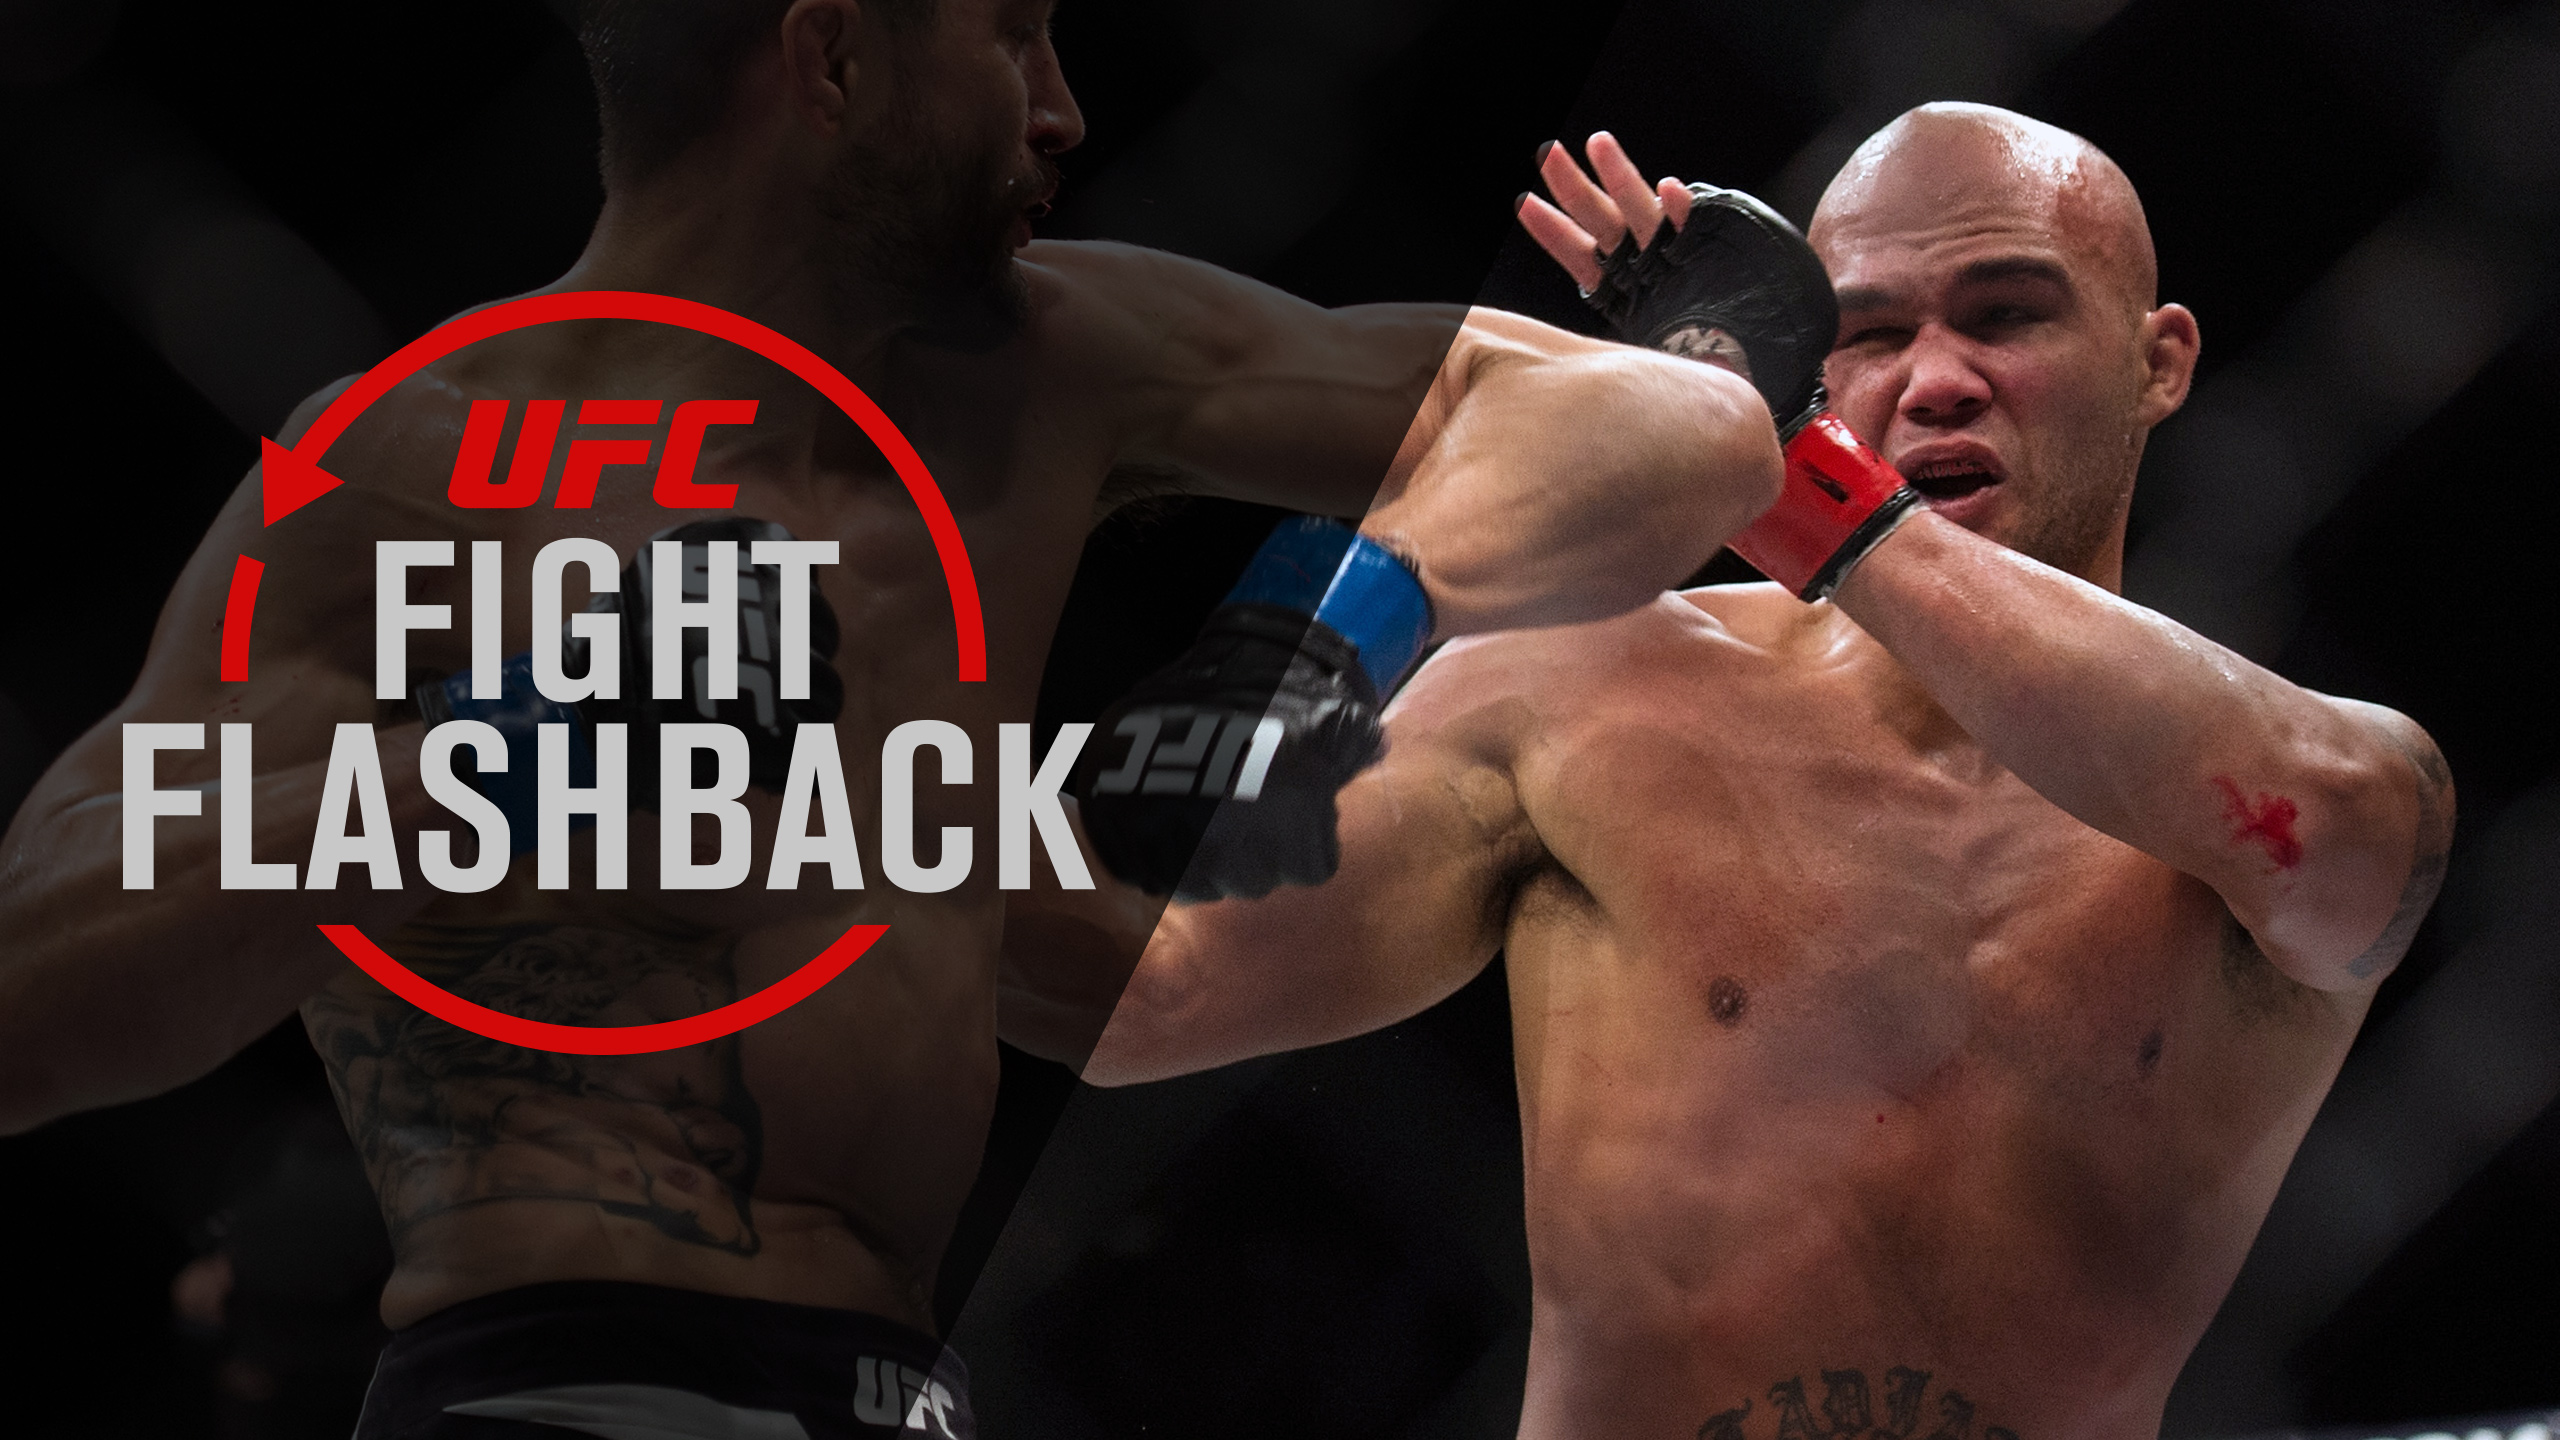 UFC Fight Flashback: Lawler vs. Condit